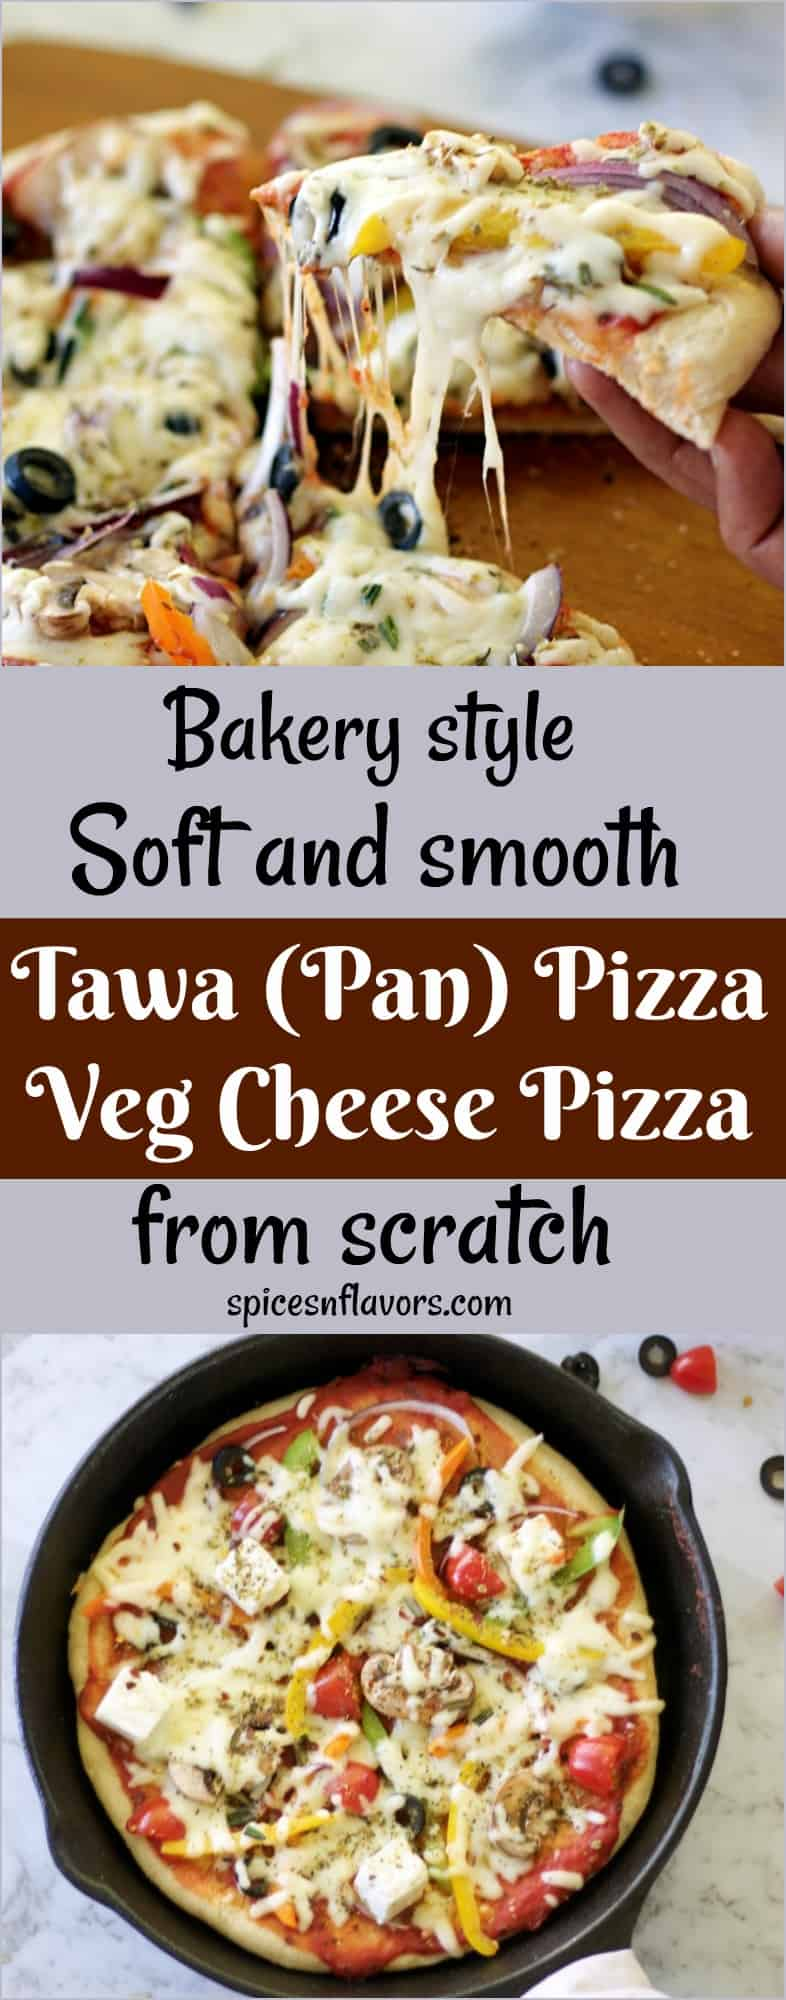 tawa pizza pizza without oven homemade pizza dough how to make pizza dough at home how to make pizza from scratch veg pizza cheese pizza easy pizza dough homemade pizza dough #pizza #homemadepizza #pizzacrust #homemade